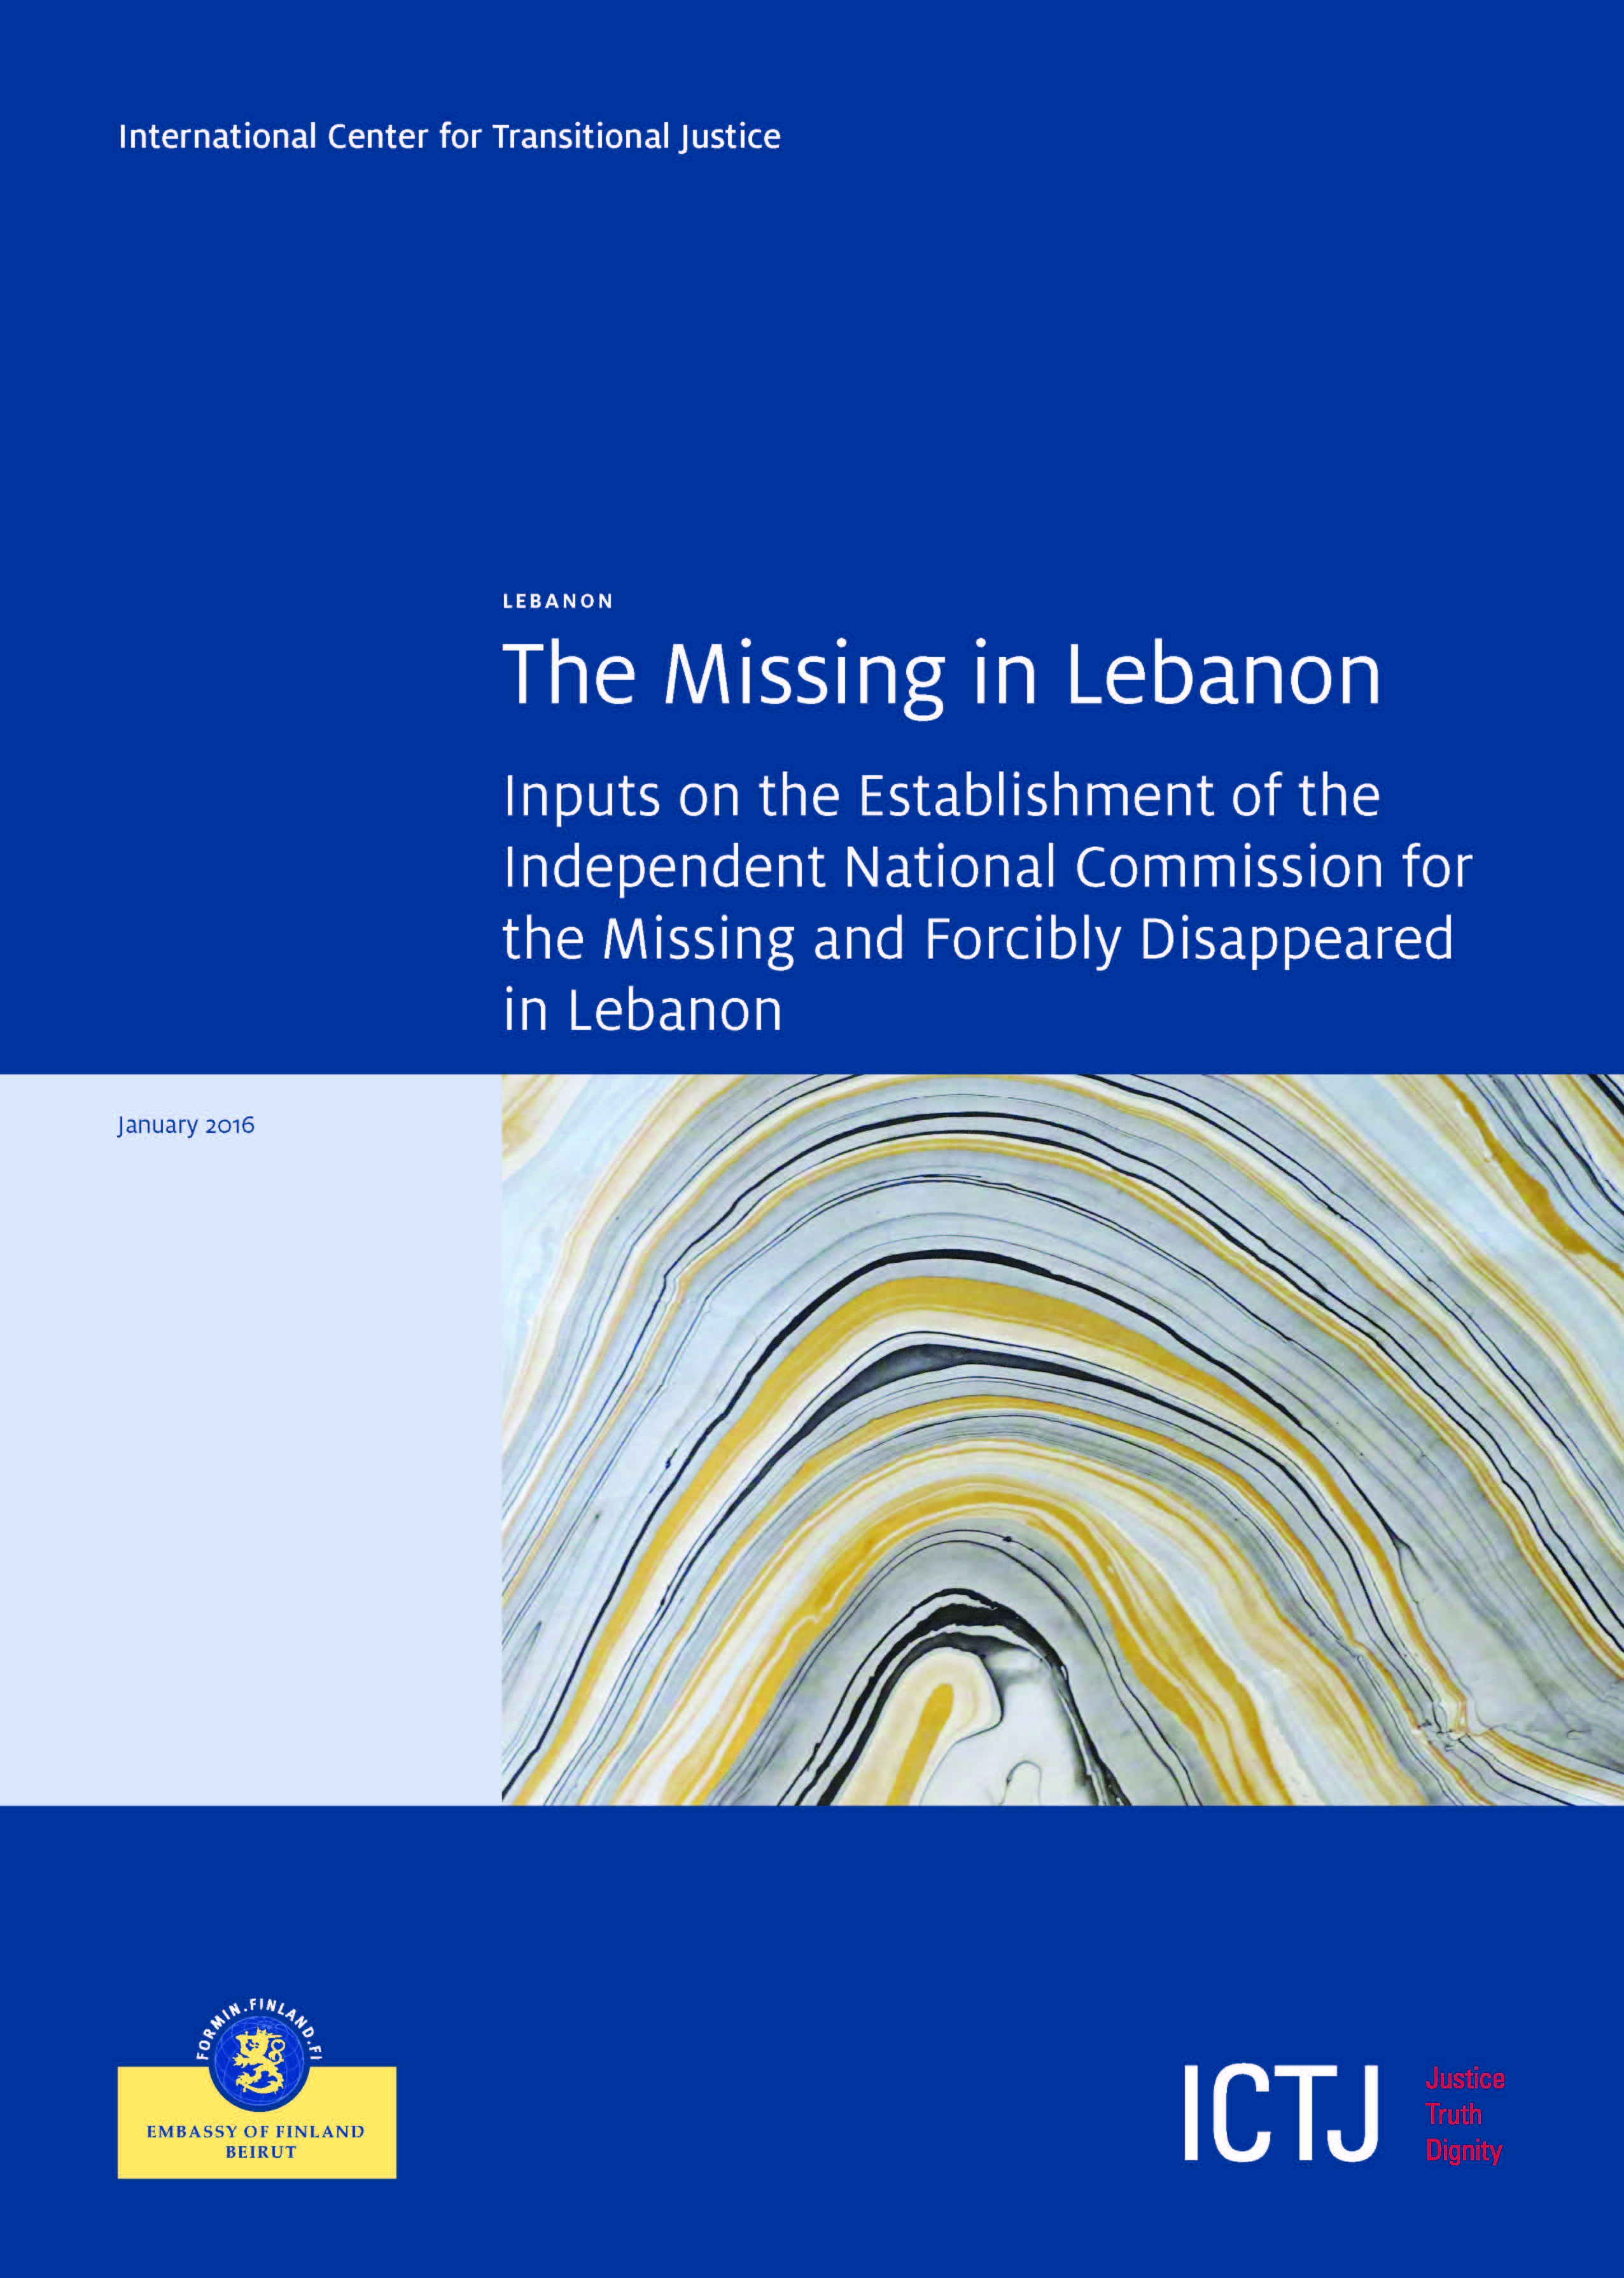 The Missing In Lebanon: Inputs On The Establishment Of The Independent National Commission For The Missing And Forcibly Disappeared In Lebanon